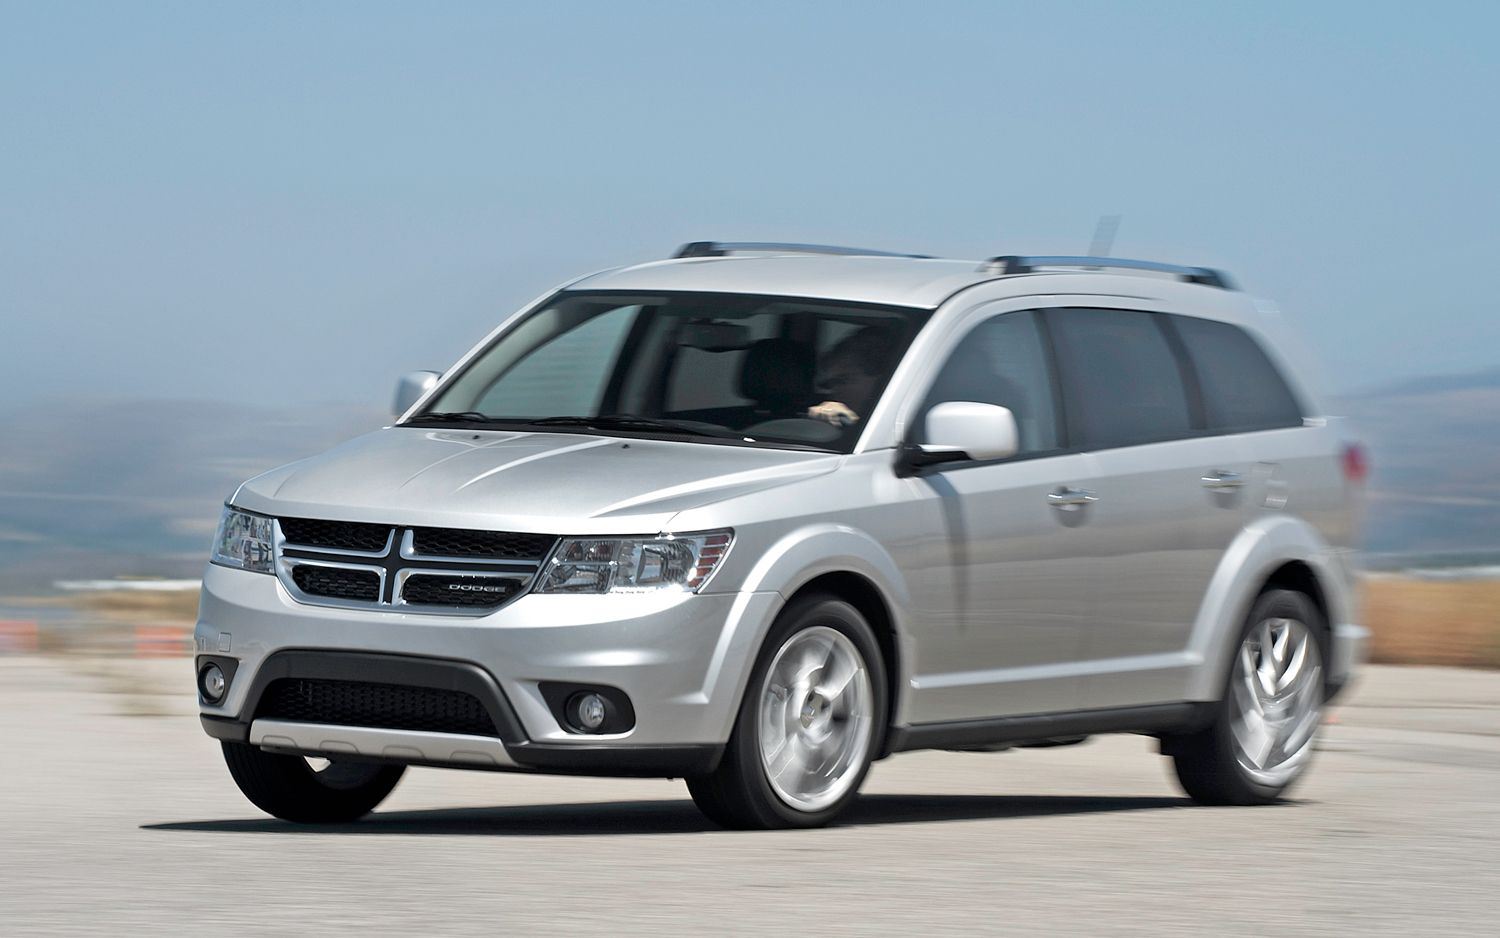 2012 Dodge Journey SXT Now Available with Four-Cylinder Engine on nissan rogue tuning, dodge avenger tuning, mazda 6 tuning, chrysler tuning, saab 9-3 tuning, toyota 4runner tuning, dodge viper tuning, opel zafira tuning, renault 5 tuning, nissan frontier tuning, kia mohave tuning, ford crown victoria tuning, mitsubishi pajero tuning, dodge ram tuning, mazda 2 tuning, dodge charger tuning, ford fusion tuning, dodge durango tuning, dodge challenger tuning, kia soul tuning,